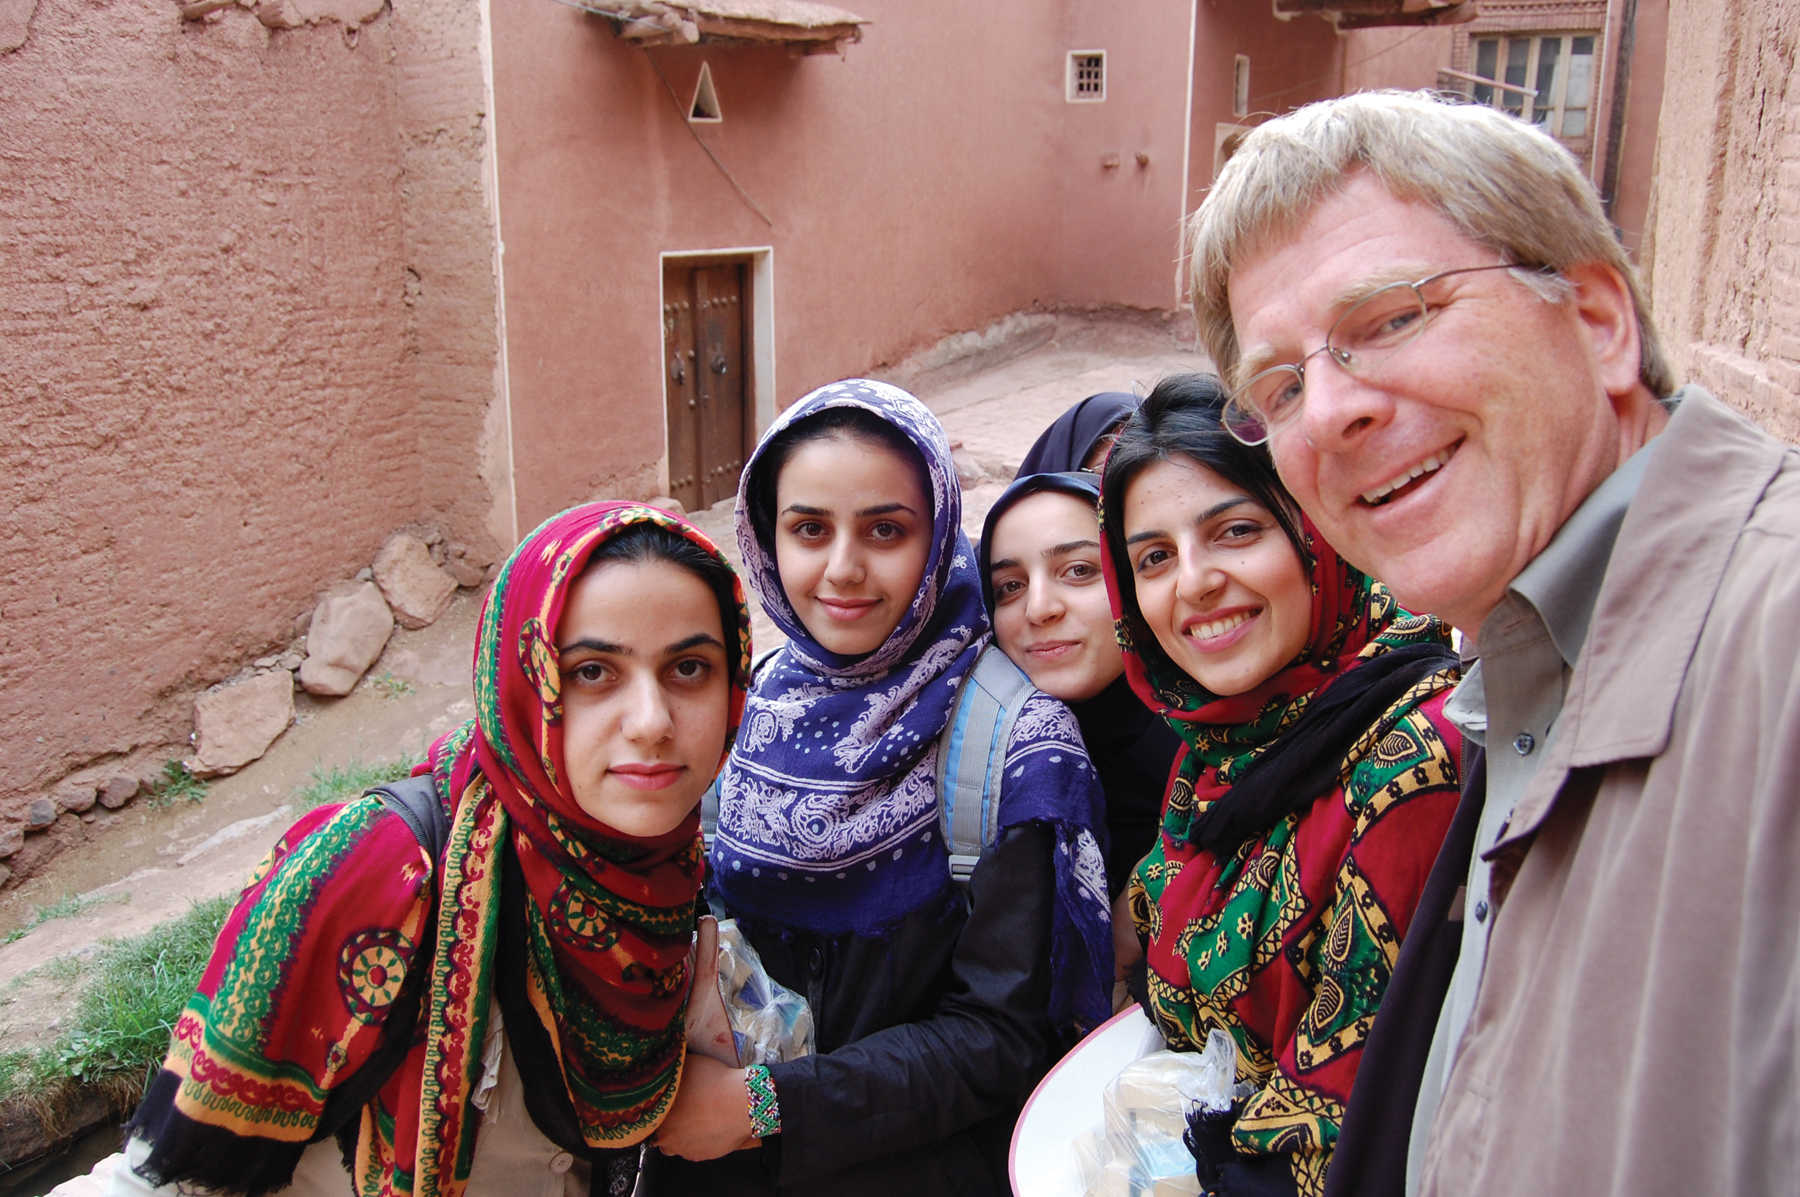 Rick with Girls in Iran